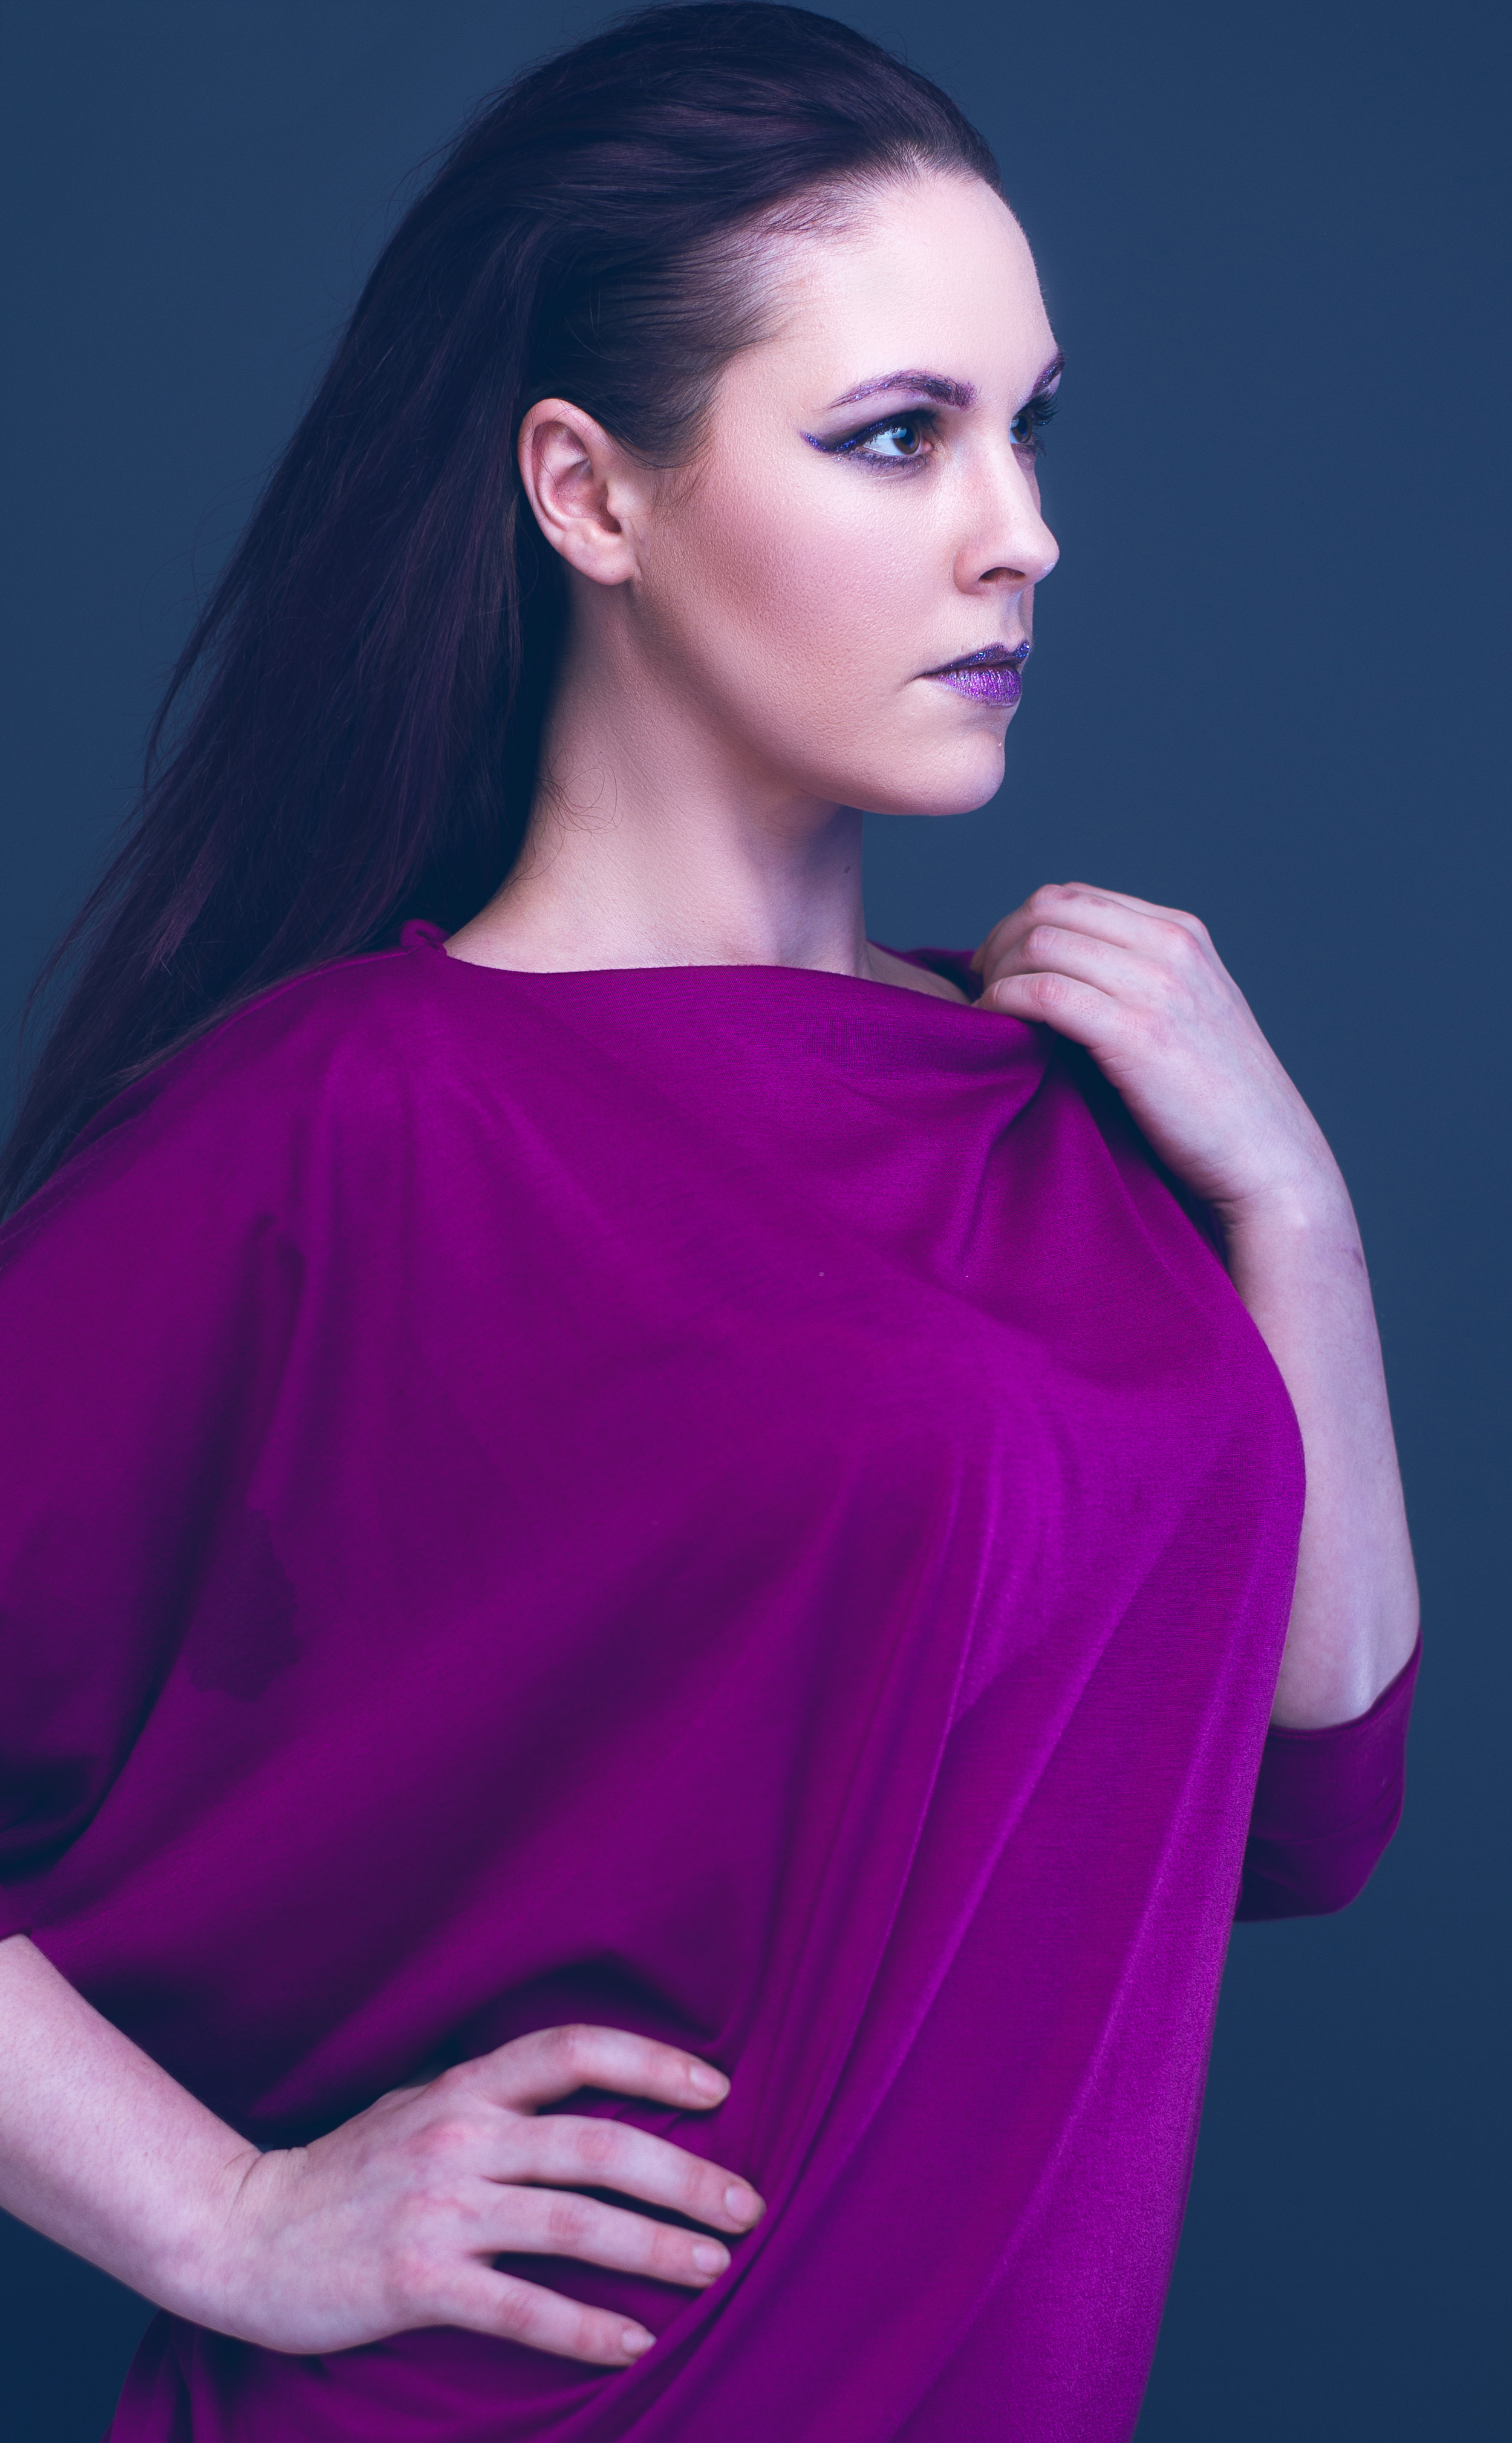 zaramia-ava-zaramiaava-leeds-fashion-designer-ethical-sustainable-minimalist-ayaka-magenta-dress-versatile-drape-cowl-styling-studio-womenswear-models-photoshoot-vibrant-colour-4